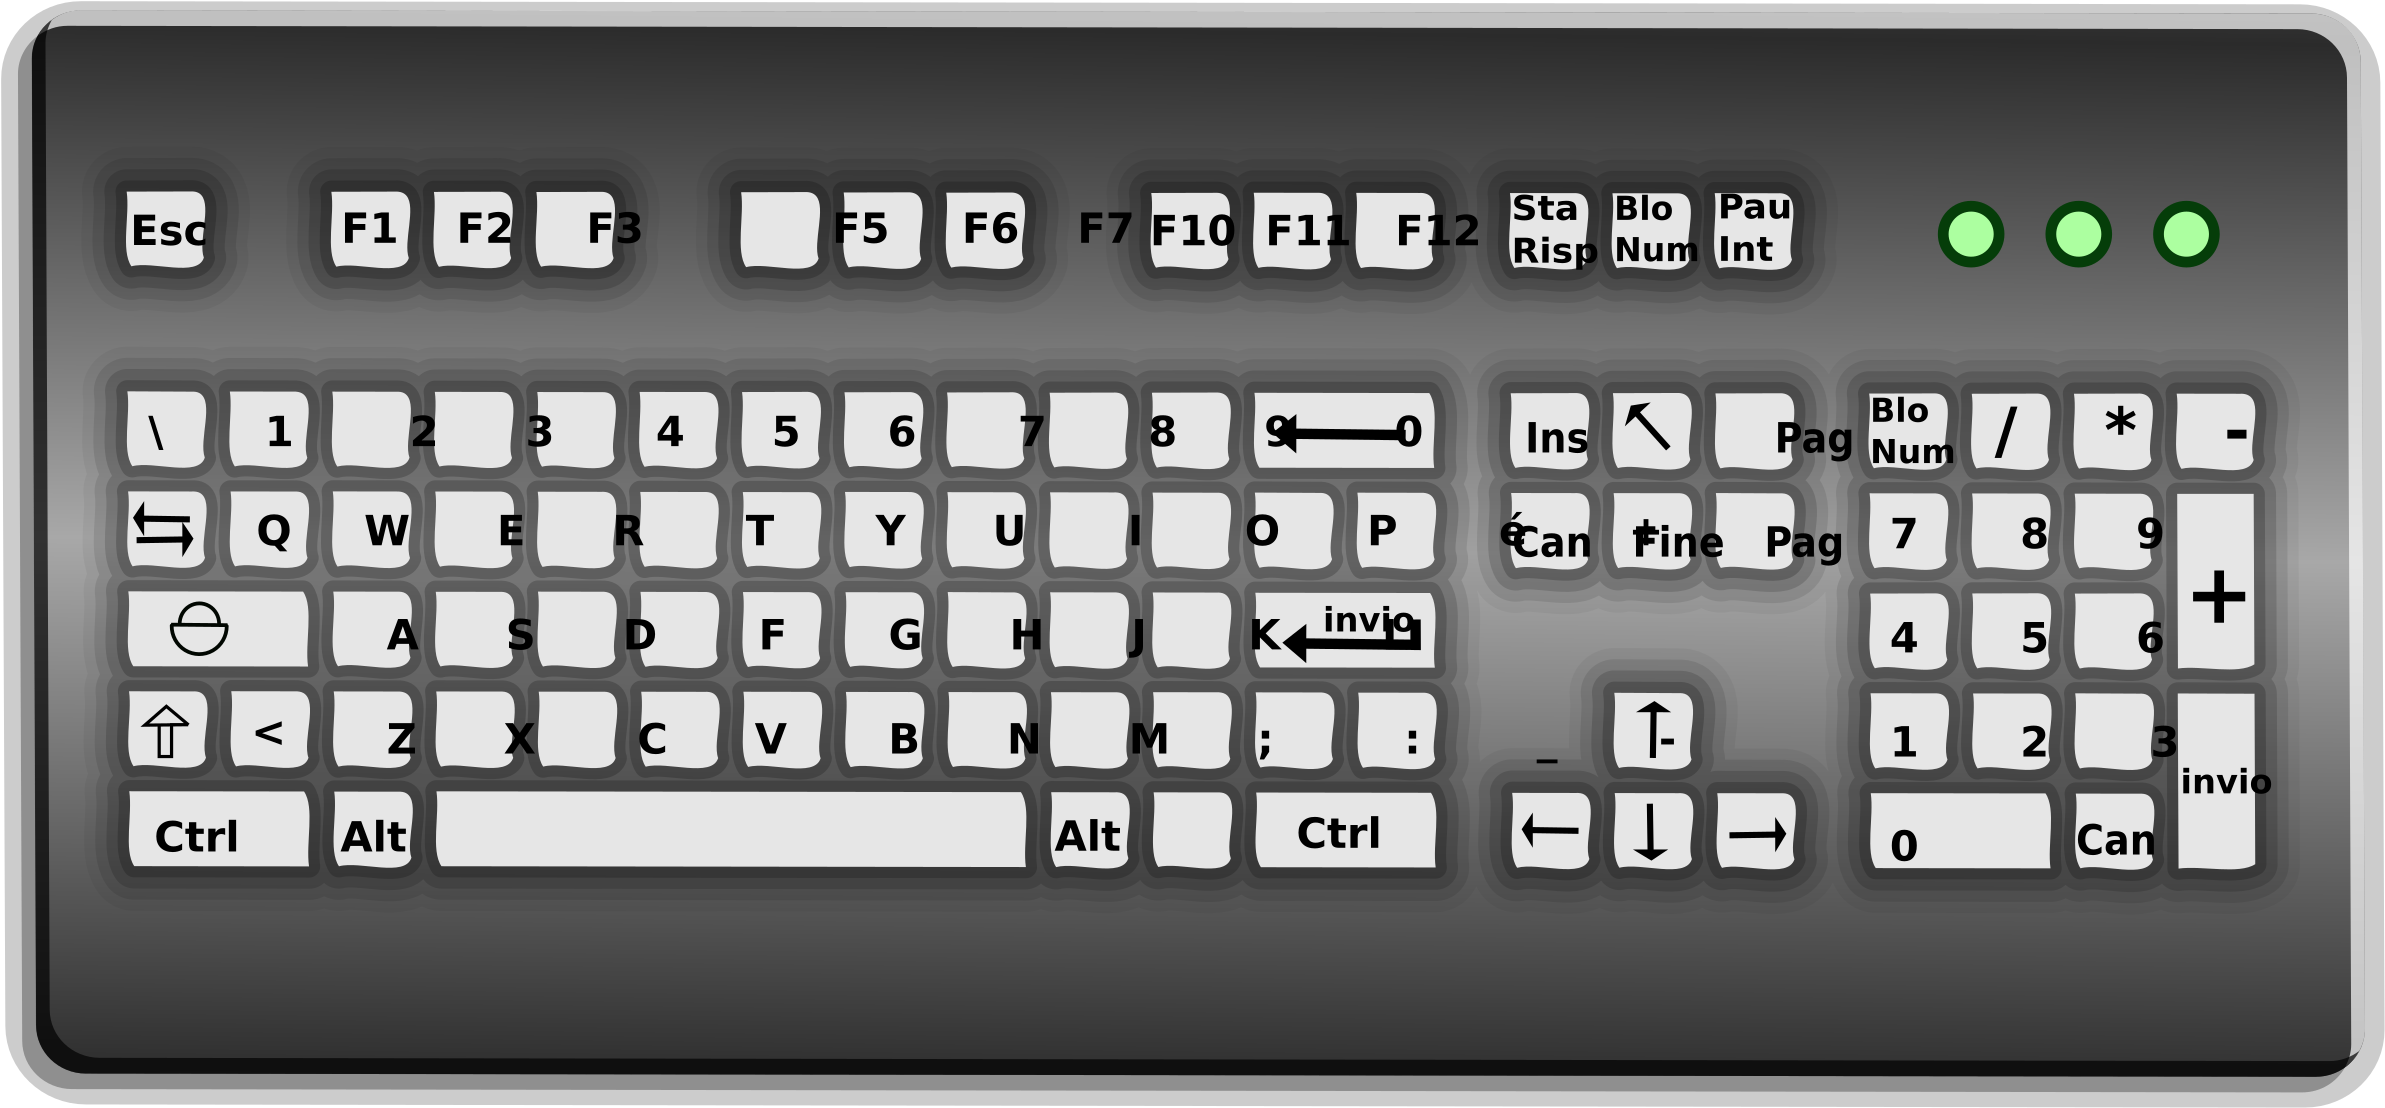 Download Keyboard Graphic Library Download Computer Keyboard Full Size Png Image Pngkit